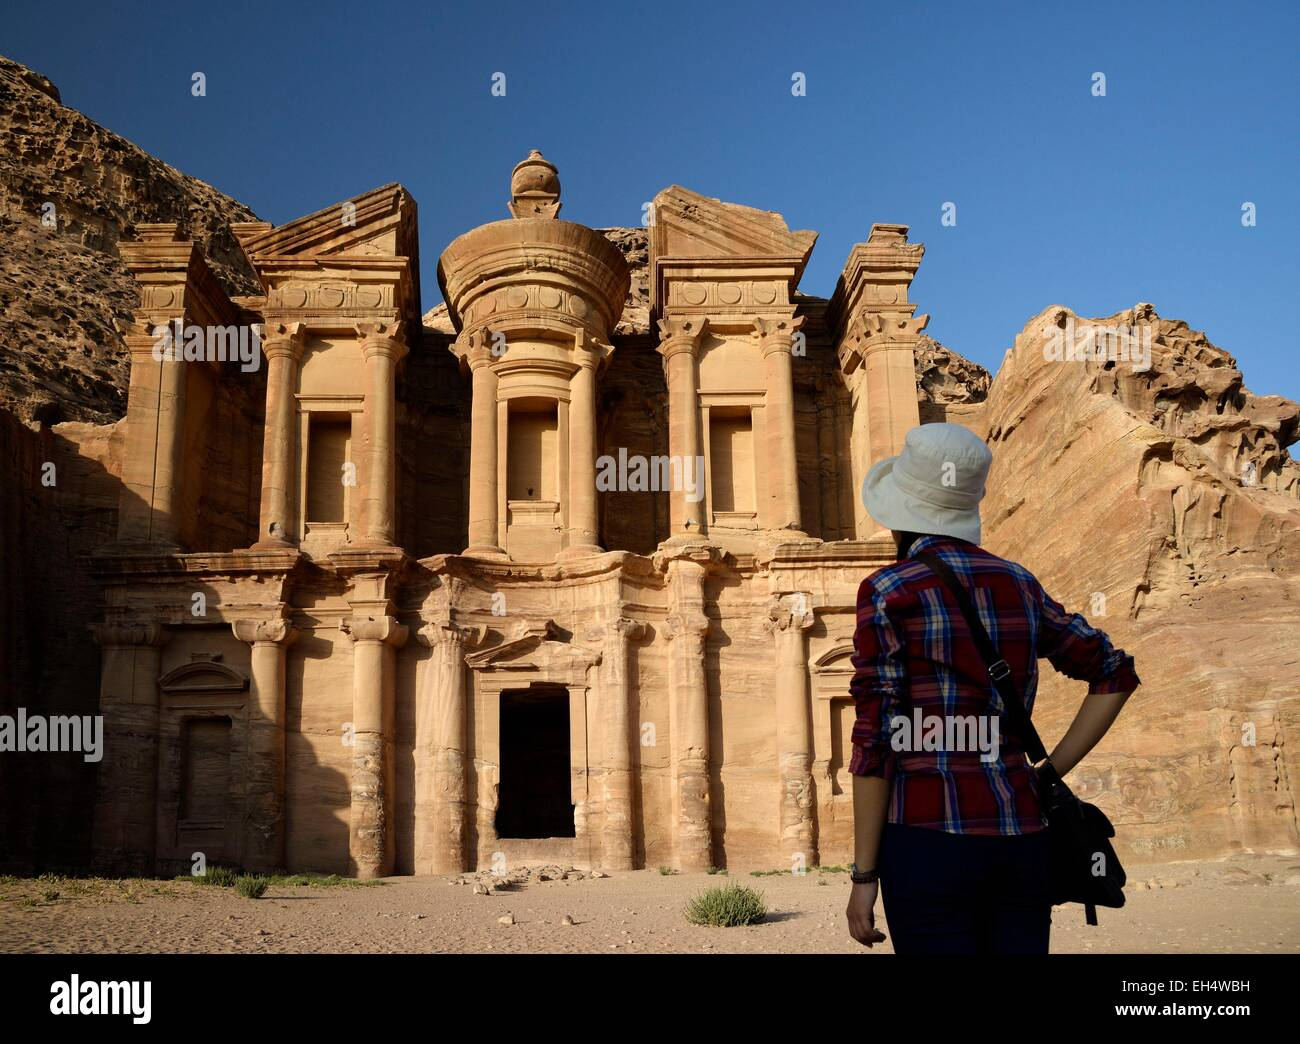 Jordan, Nabataean archeological site of Petra, listed as World Heritage by UNESCO, silhouette of a woman watching - Stock Image